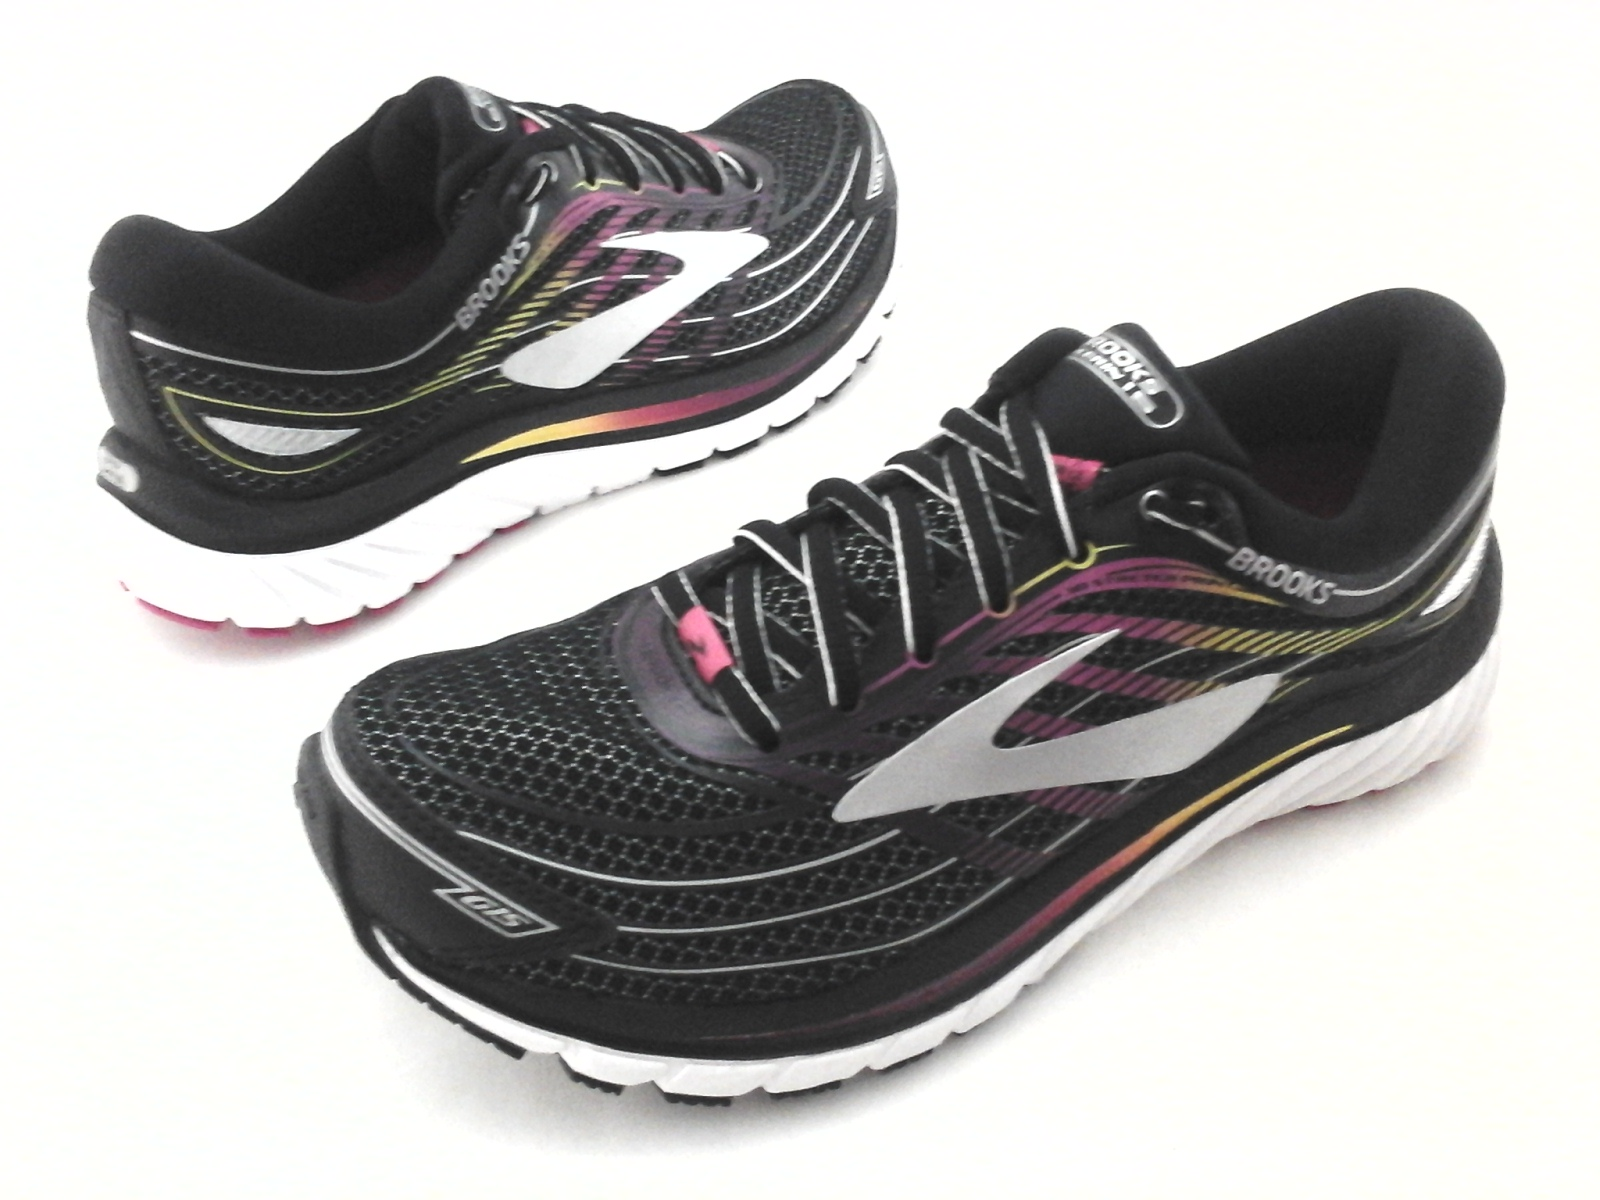 e8adc578f95 BROOKS Glycerin 15 Shoes Black Multi Running Sneakers DNA Womens US 6  36.5   150